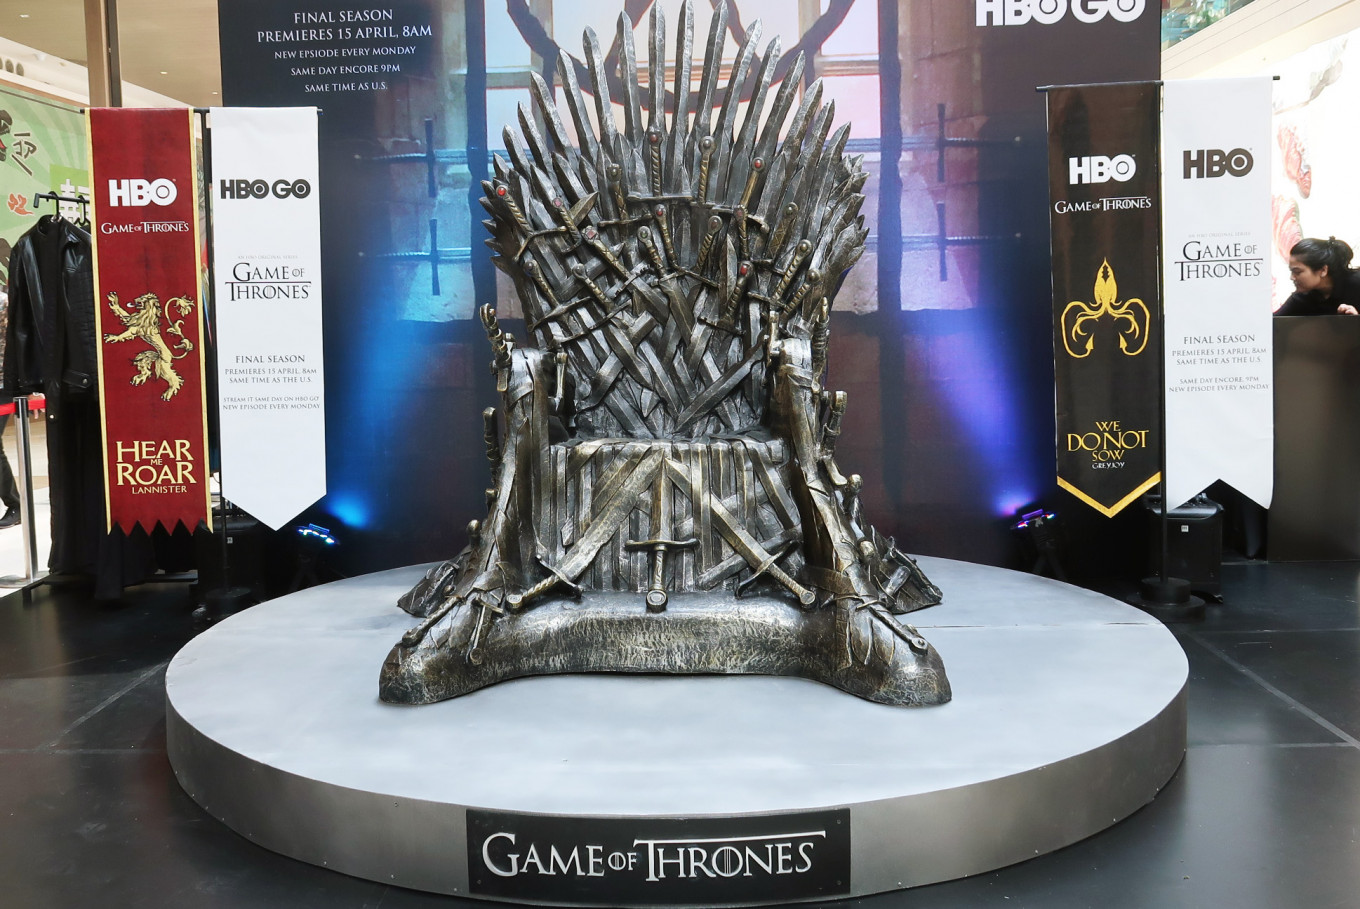 From Iron Throne to Ice Dragon: 'Game of Thrones' arrives in Jakarta